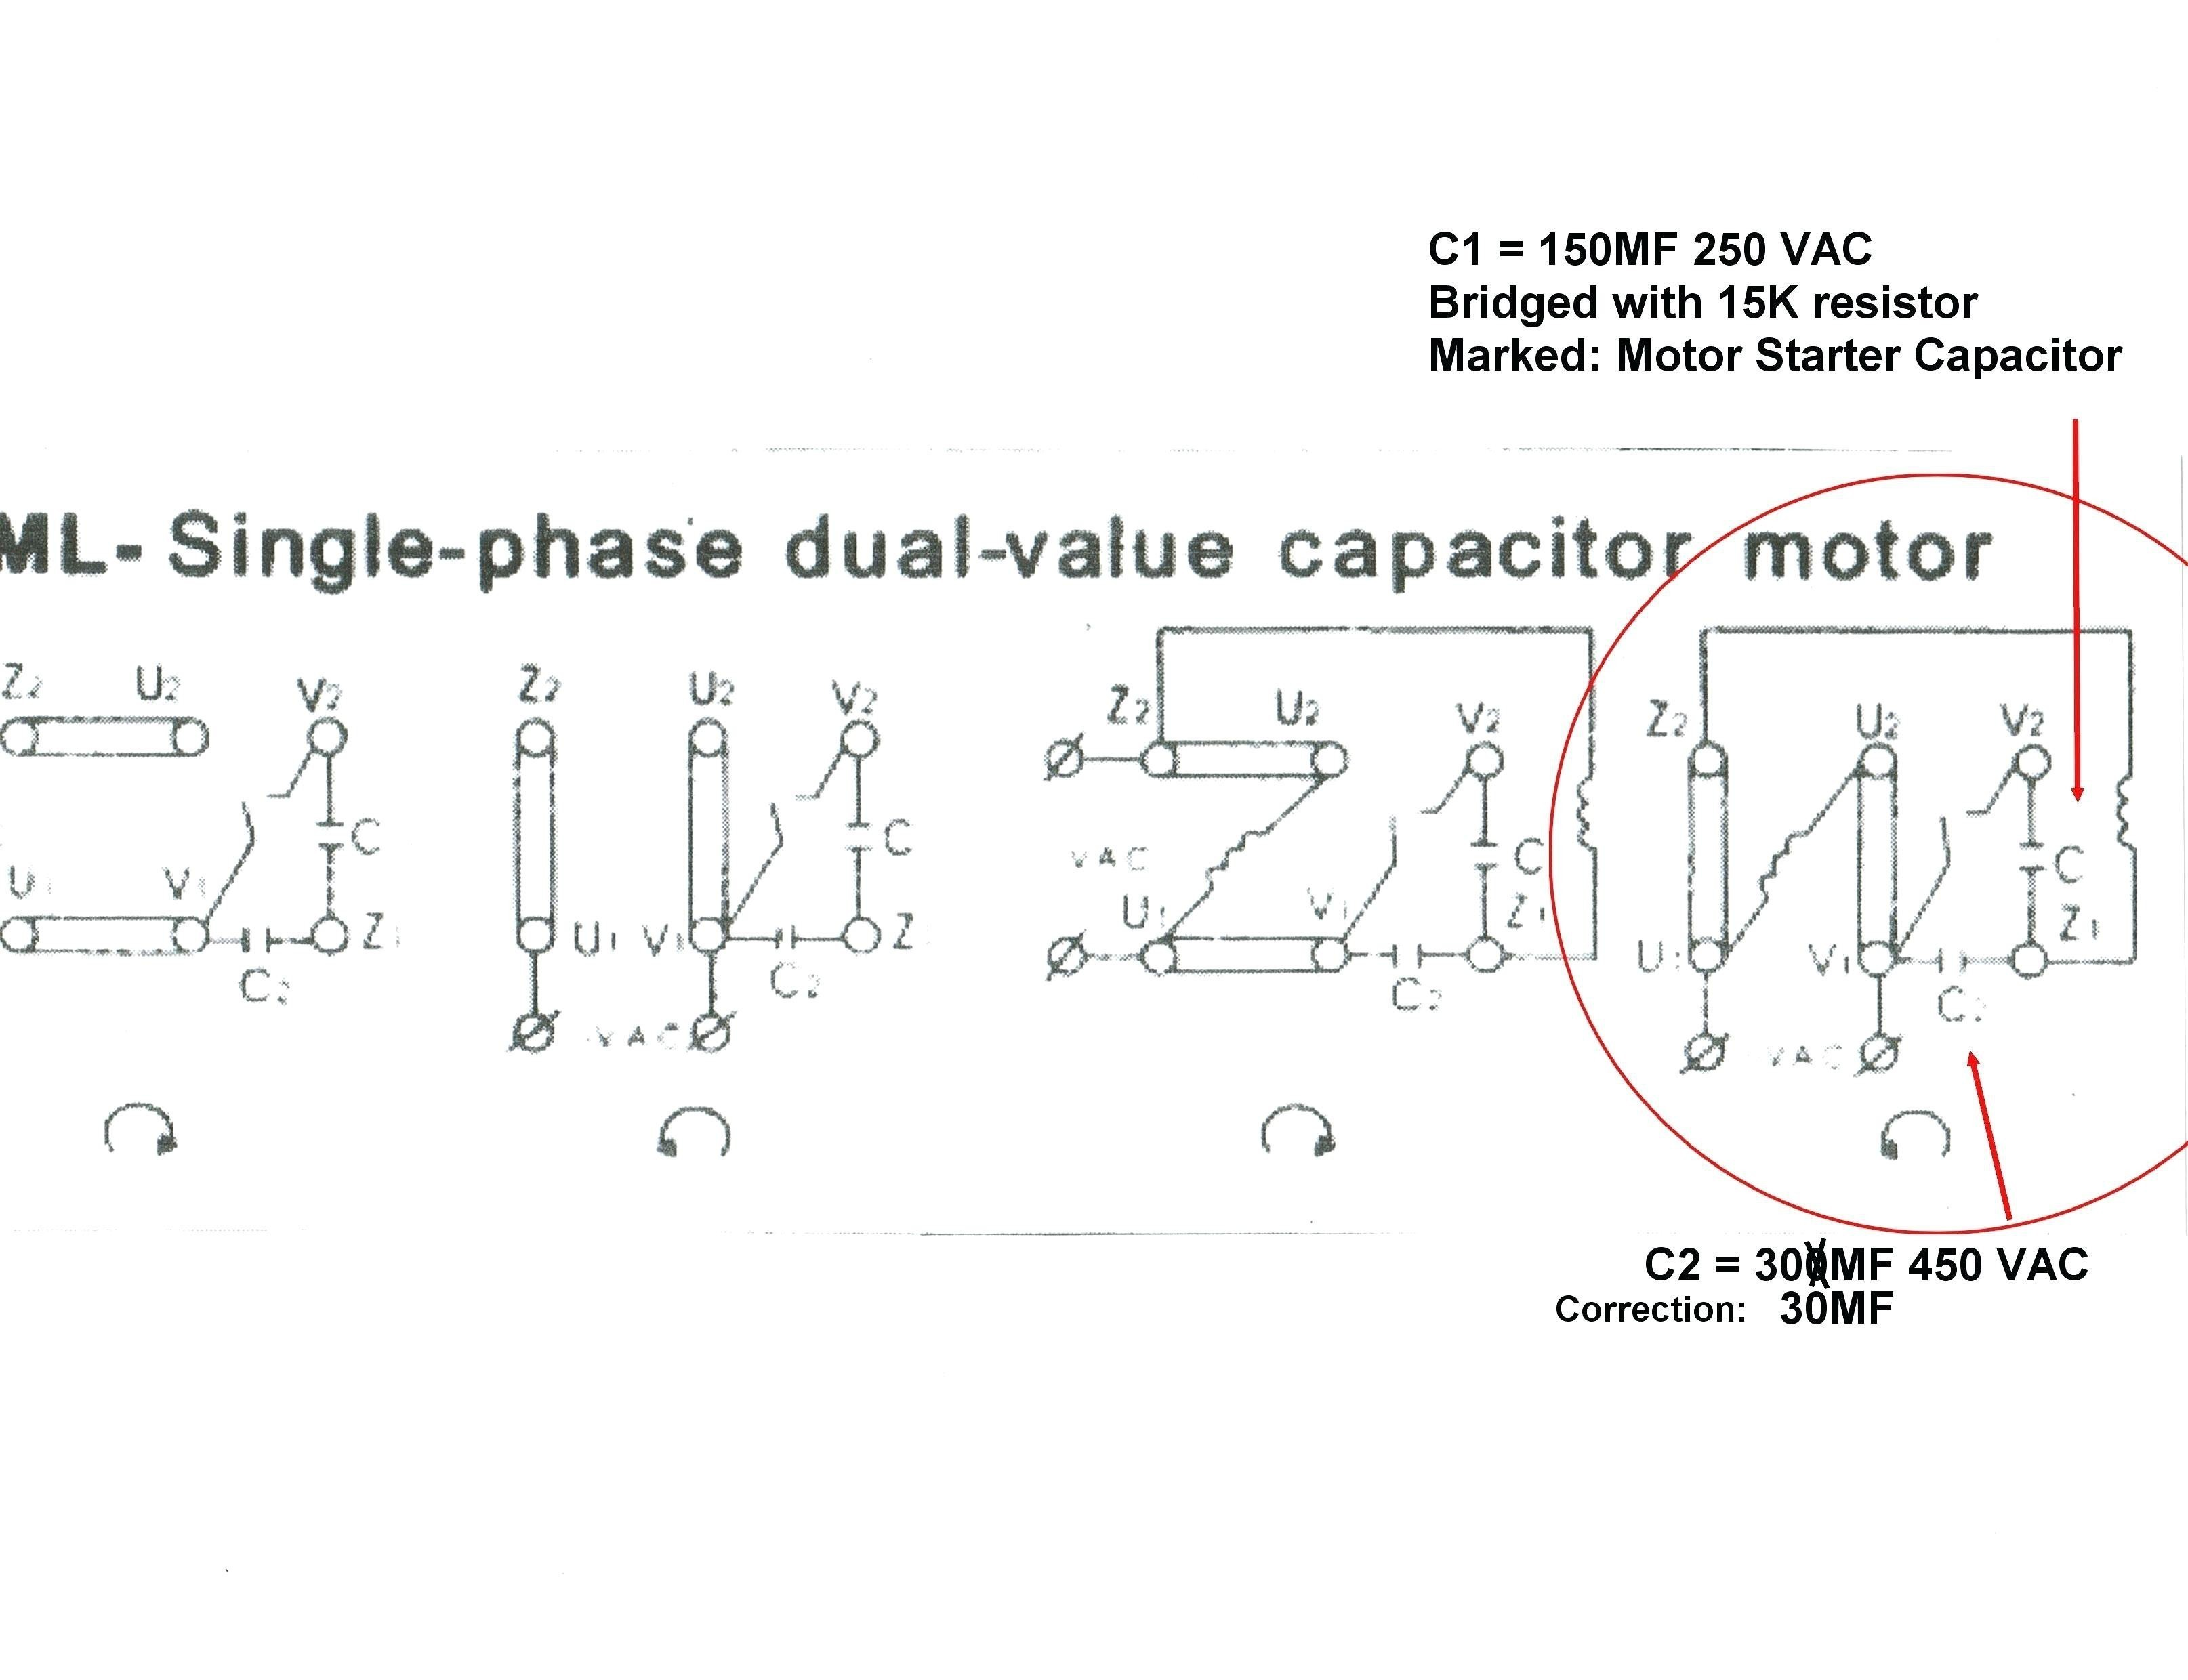 6 lead single phase motor wiring diagram pdf motorssite org rh motorssite  org